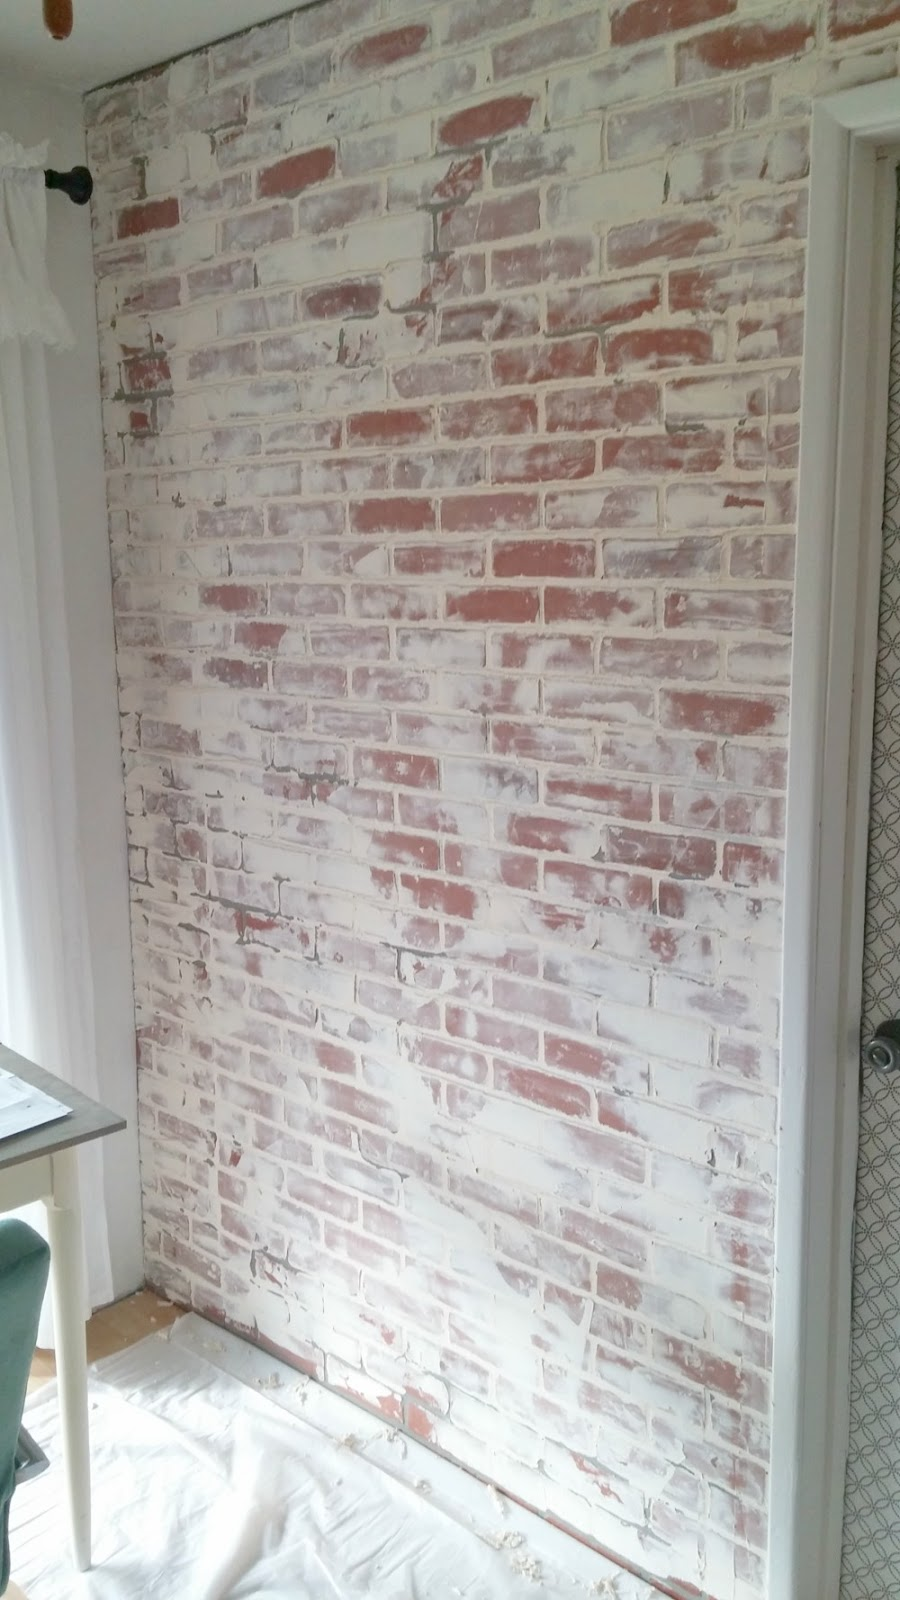 Interior brick wall with German schmear